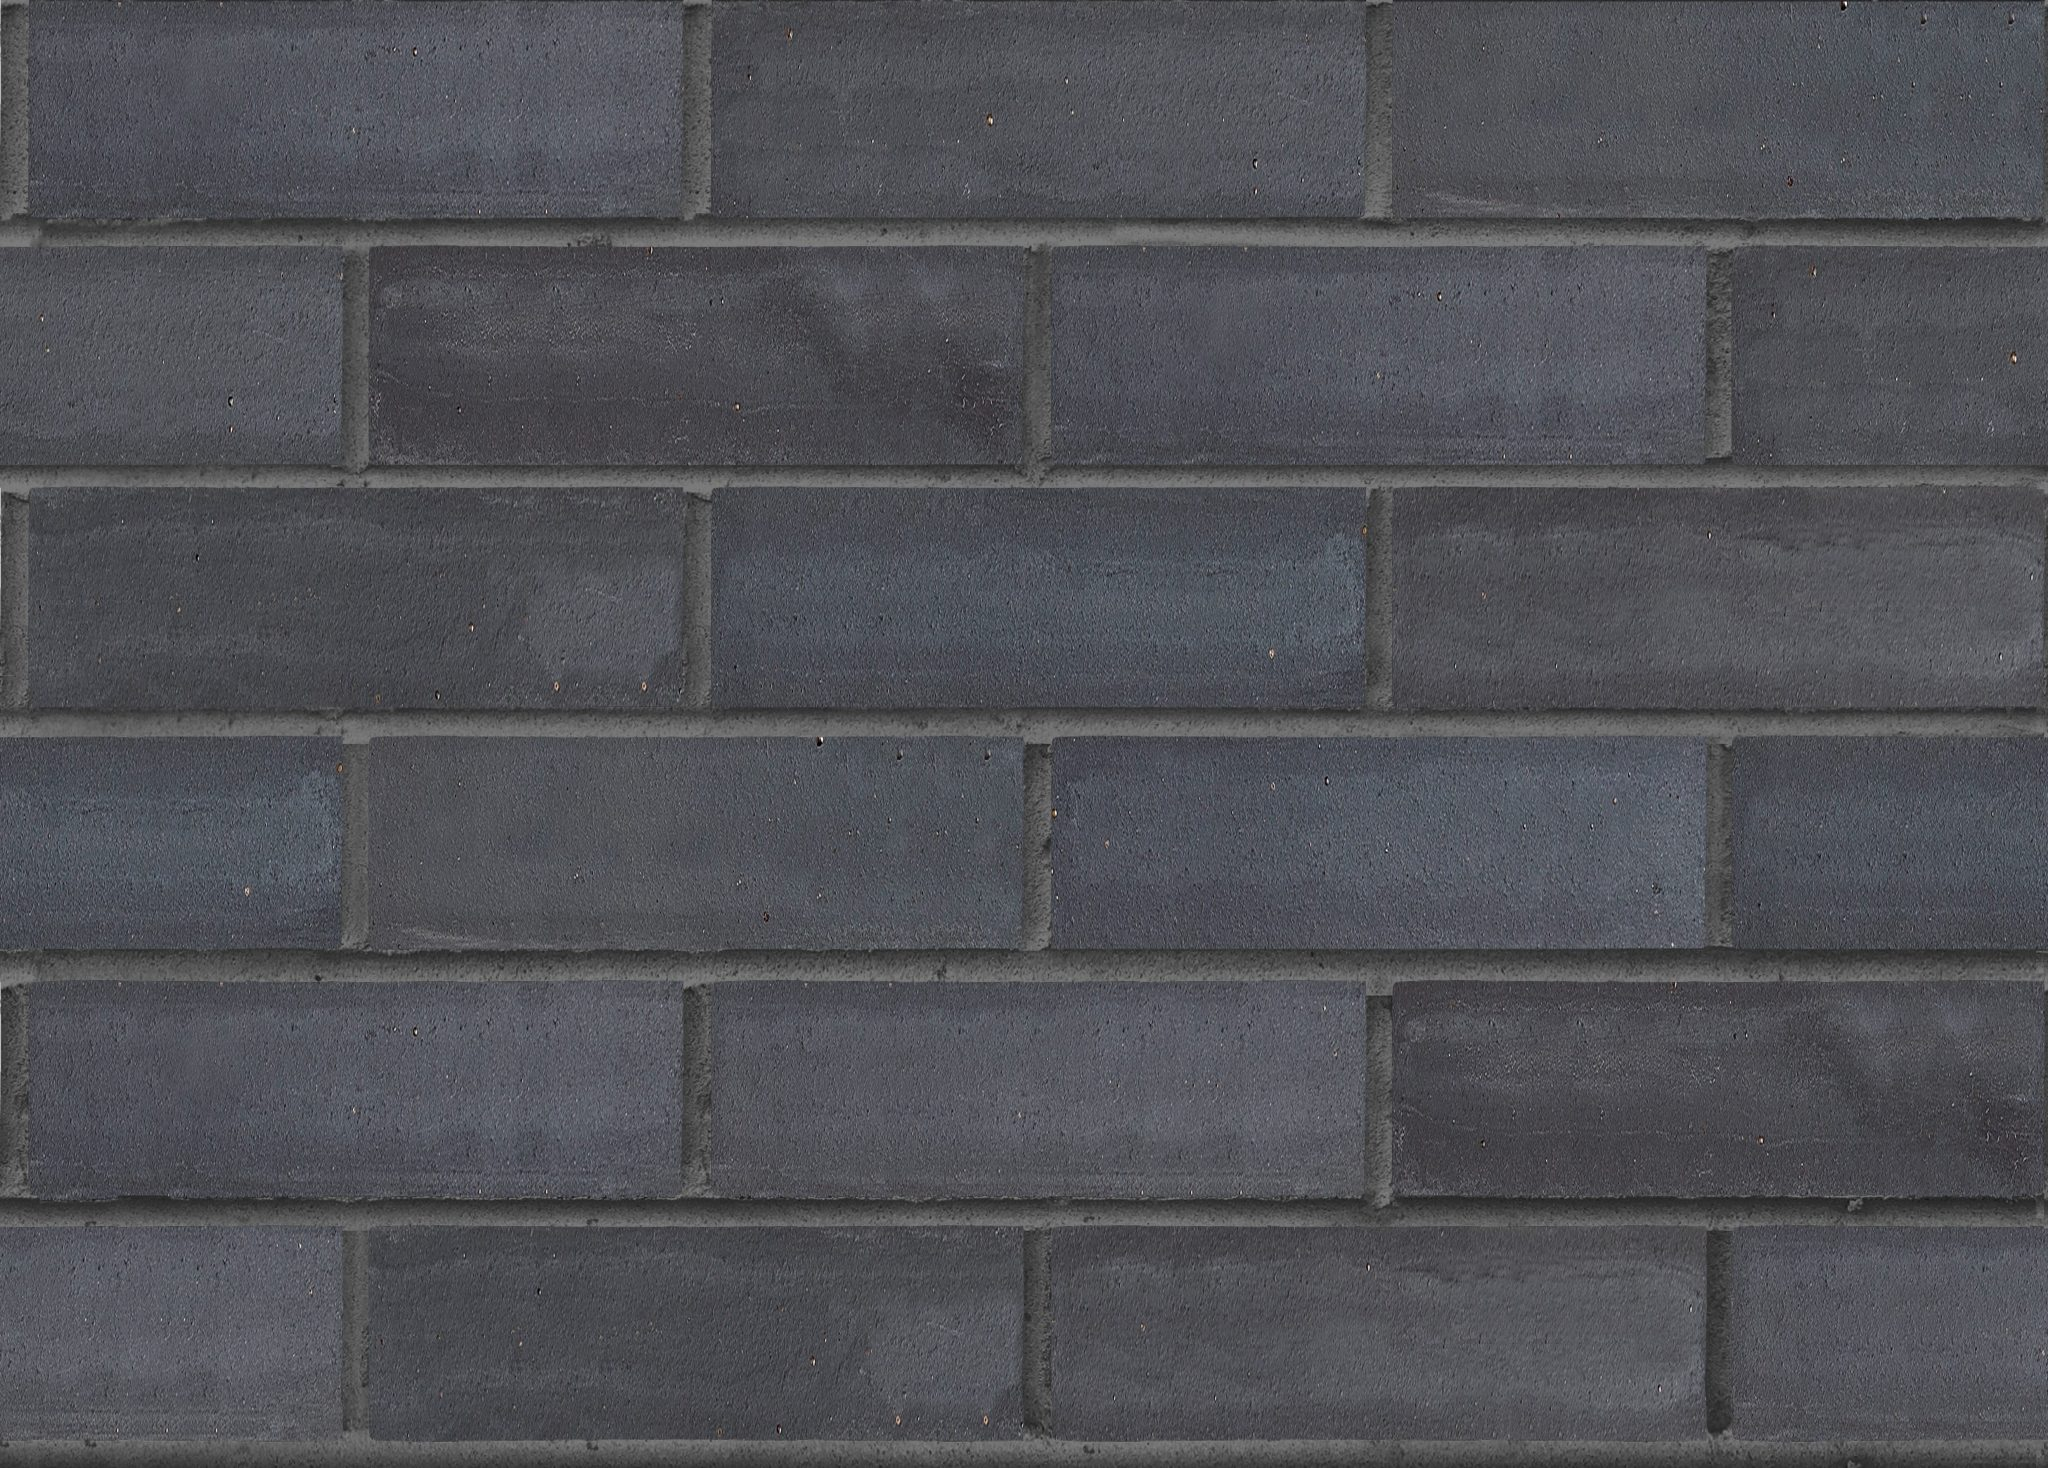 LaPalomaGaudi230x76-110-240 - NSW Bricks